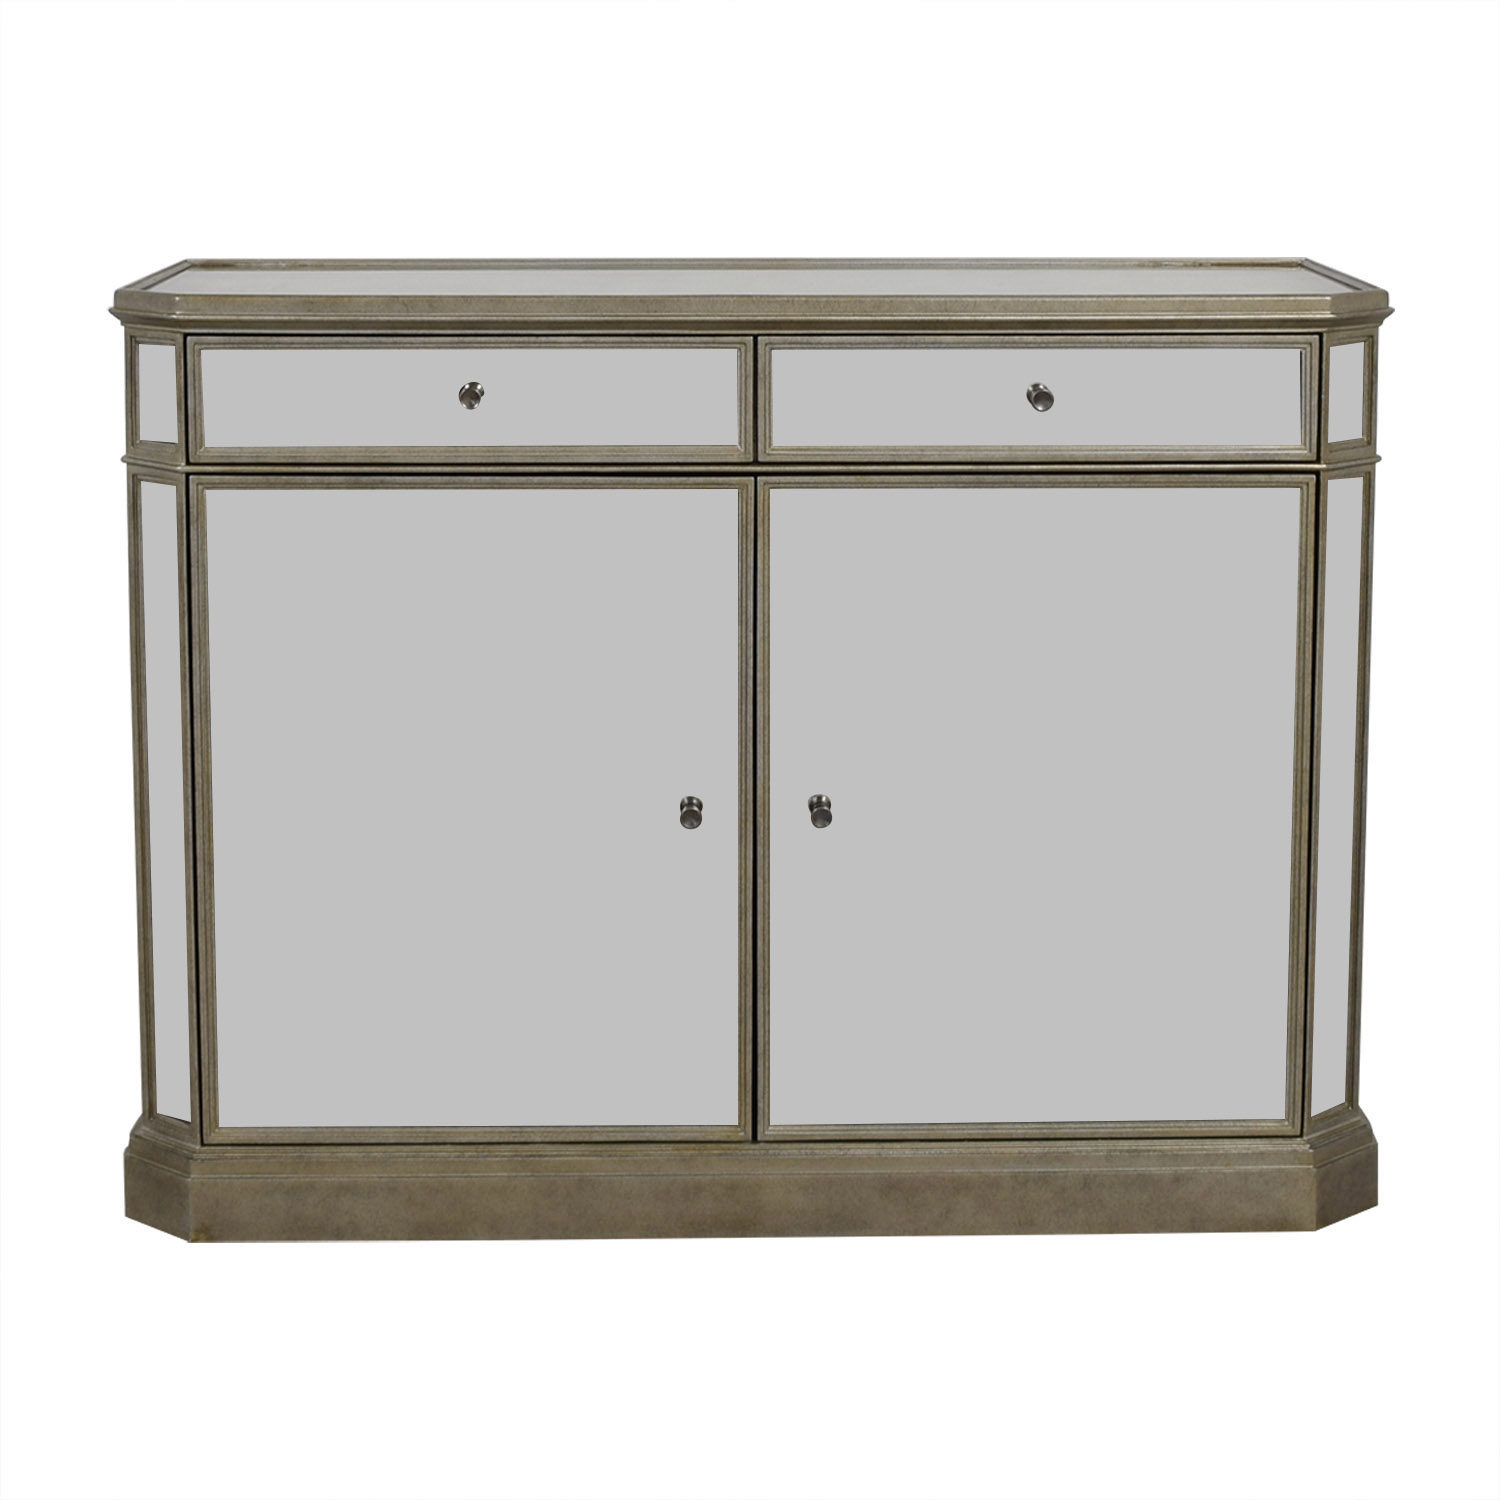 Restoration Hardware Restoration Hardware Mirrored Cabinet nyc